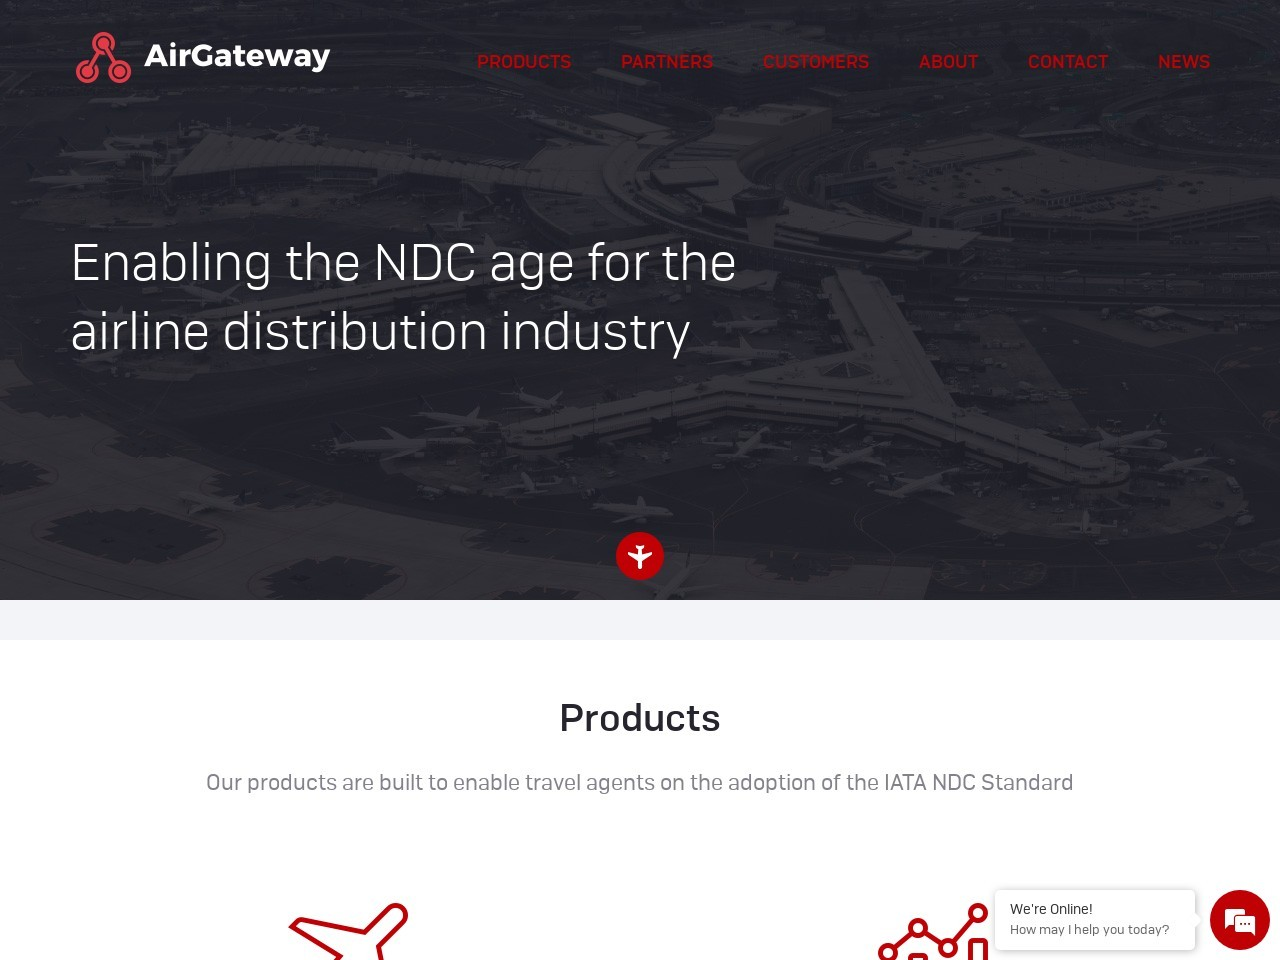 https://airgateway.com